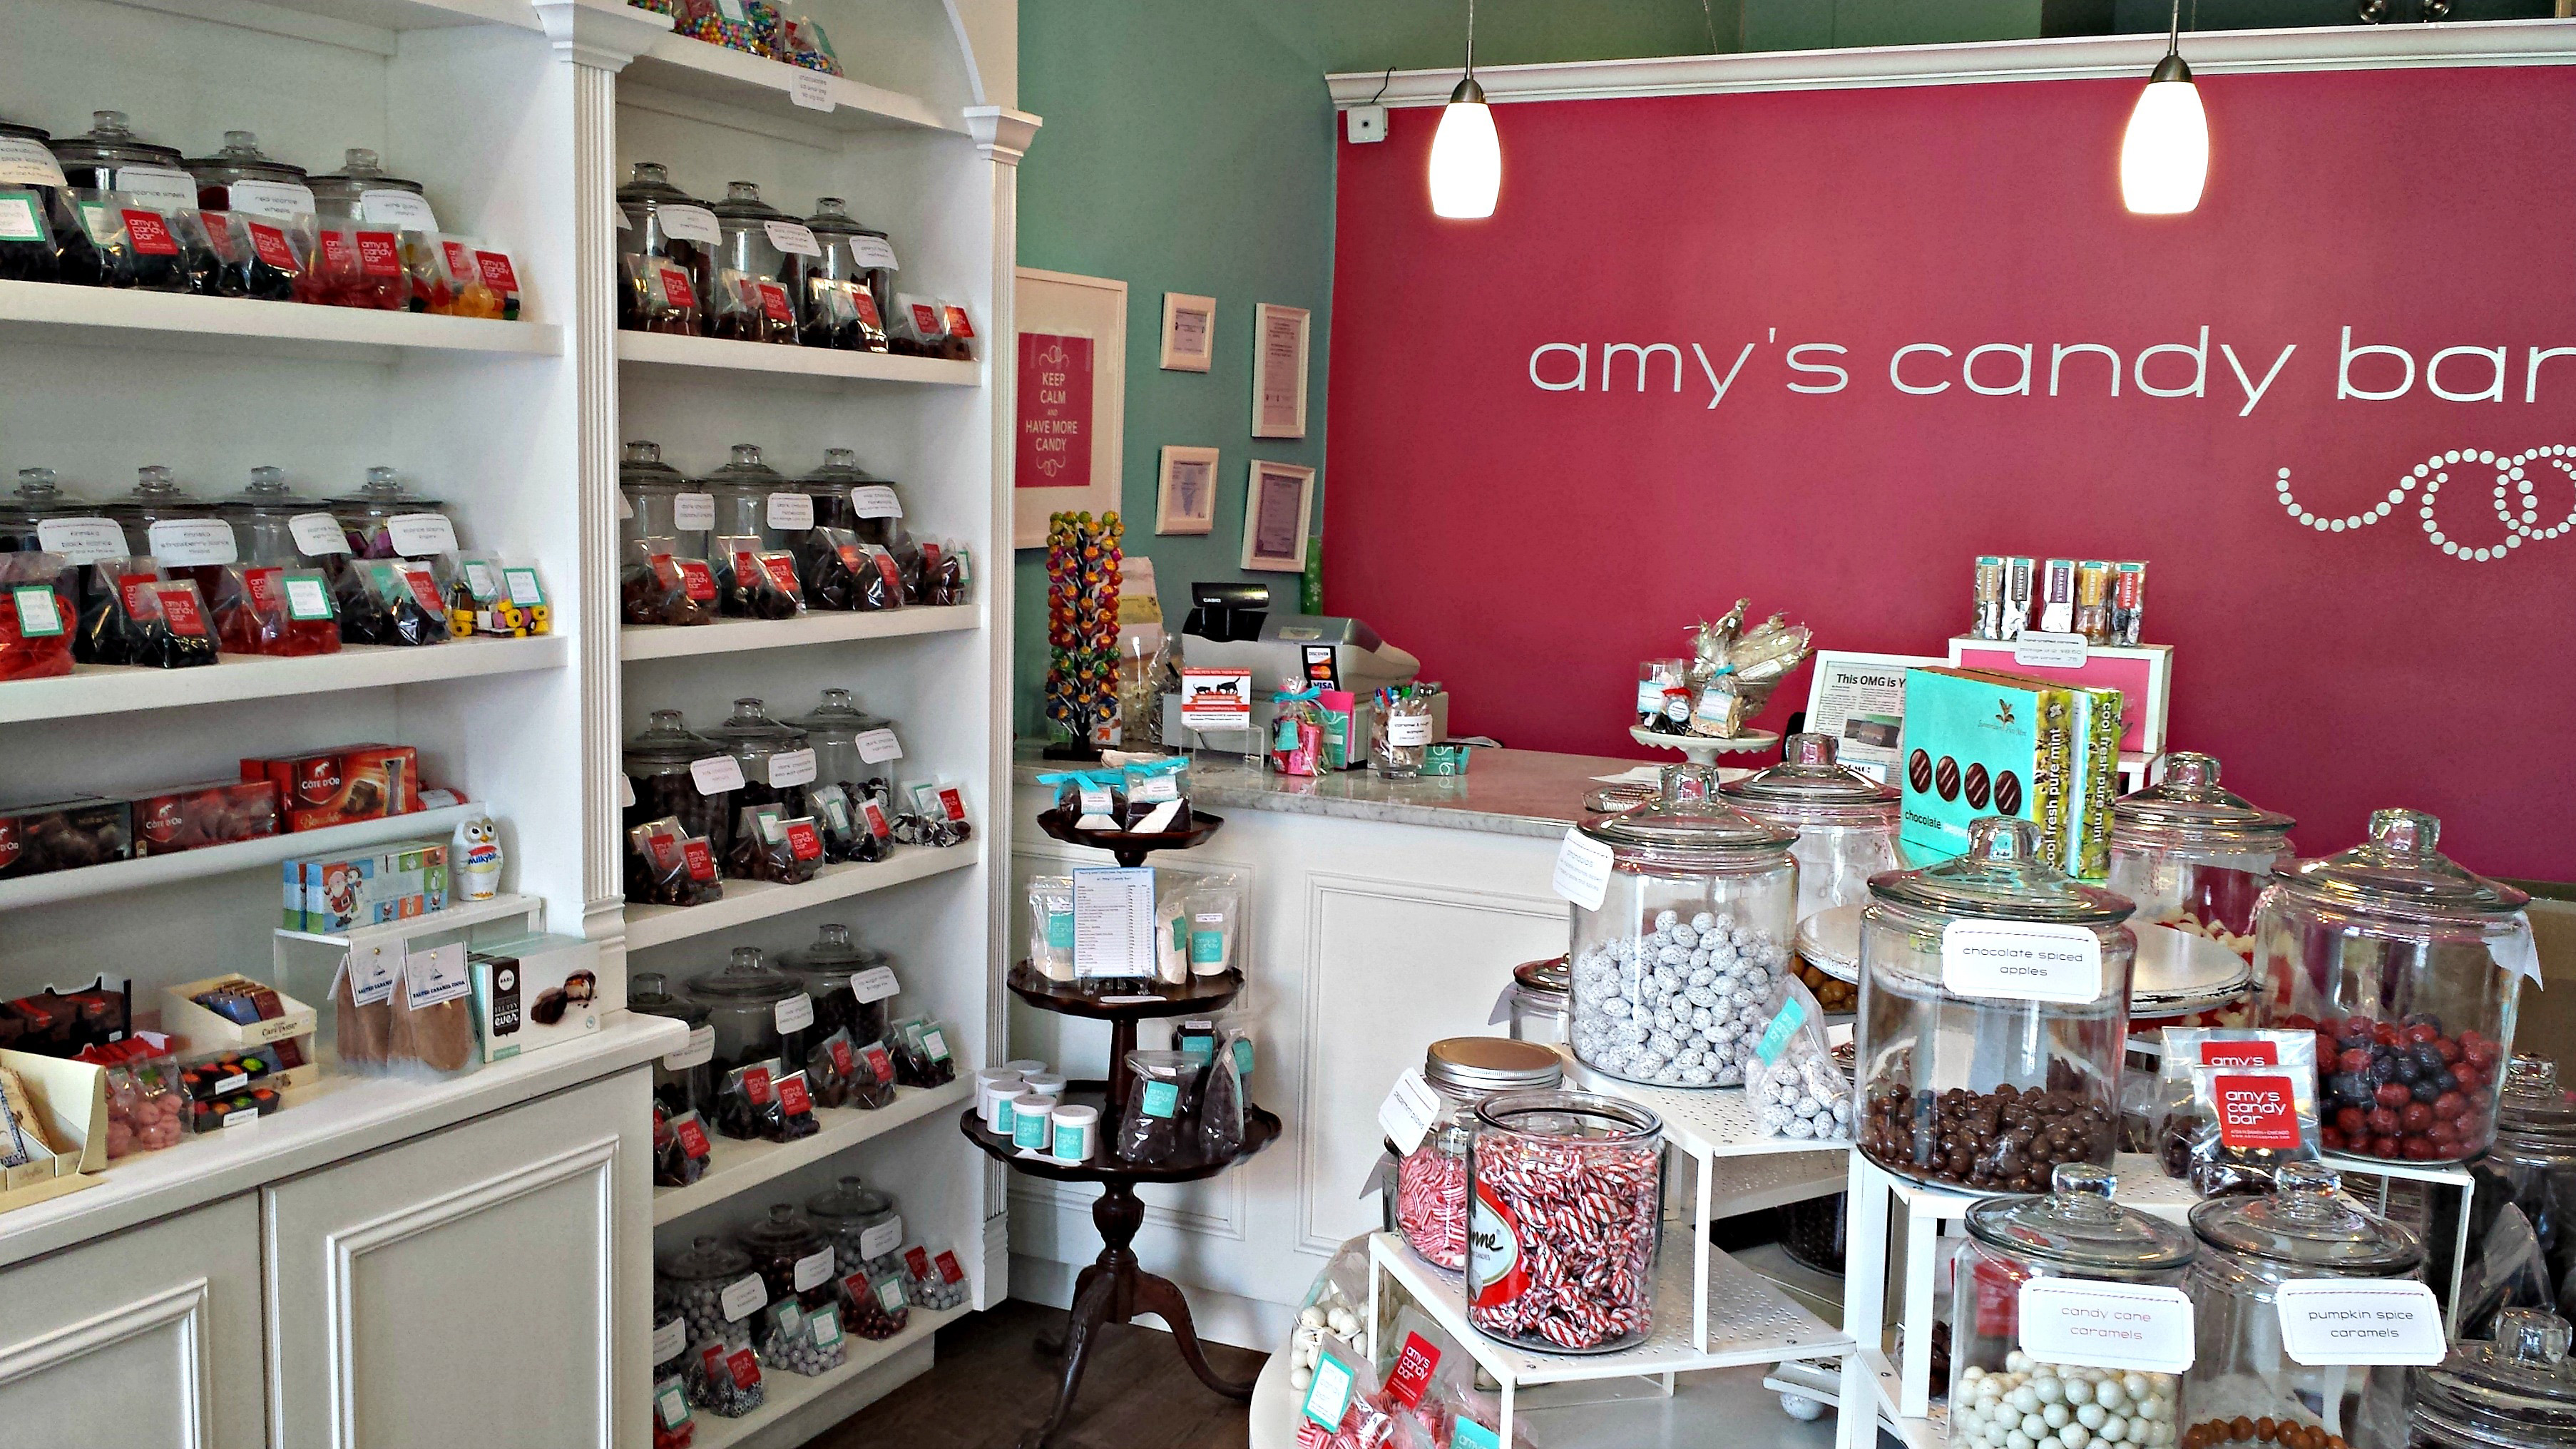 Amy's Candy Bar, Chicago